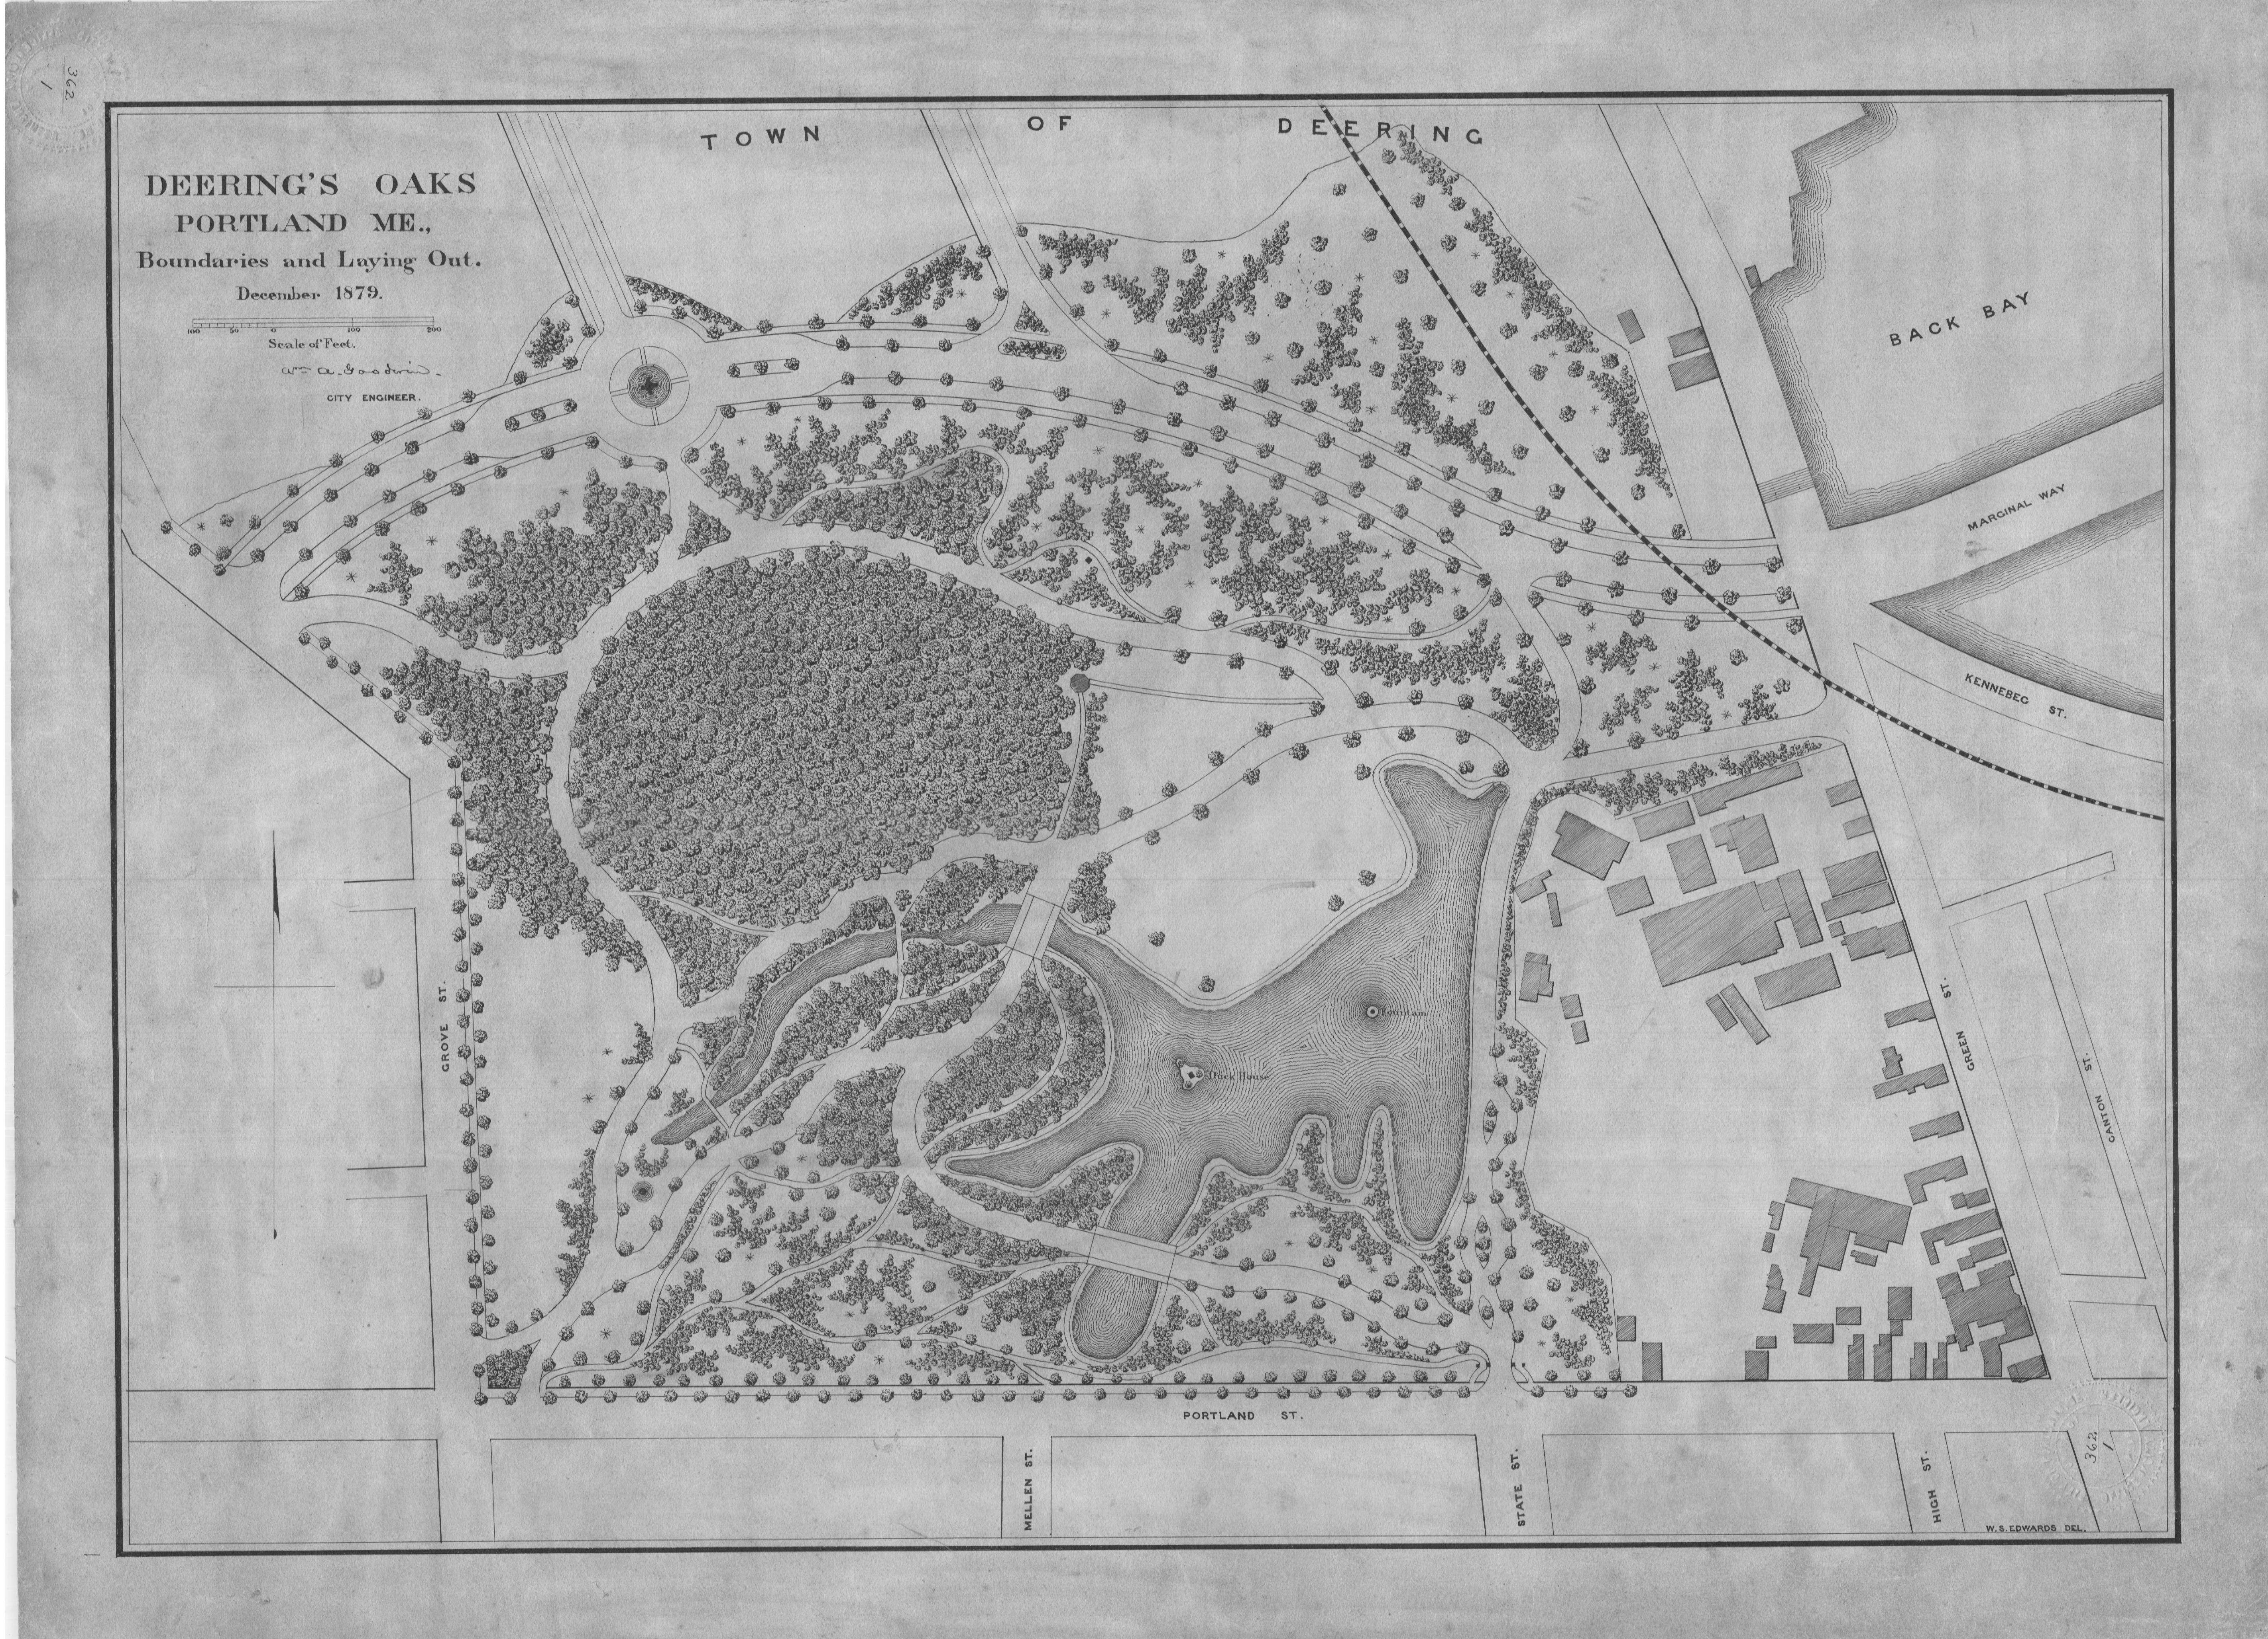 The 1879 map of Deering Oaks, made available by the Friends of Deering Oaks